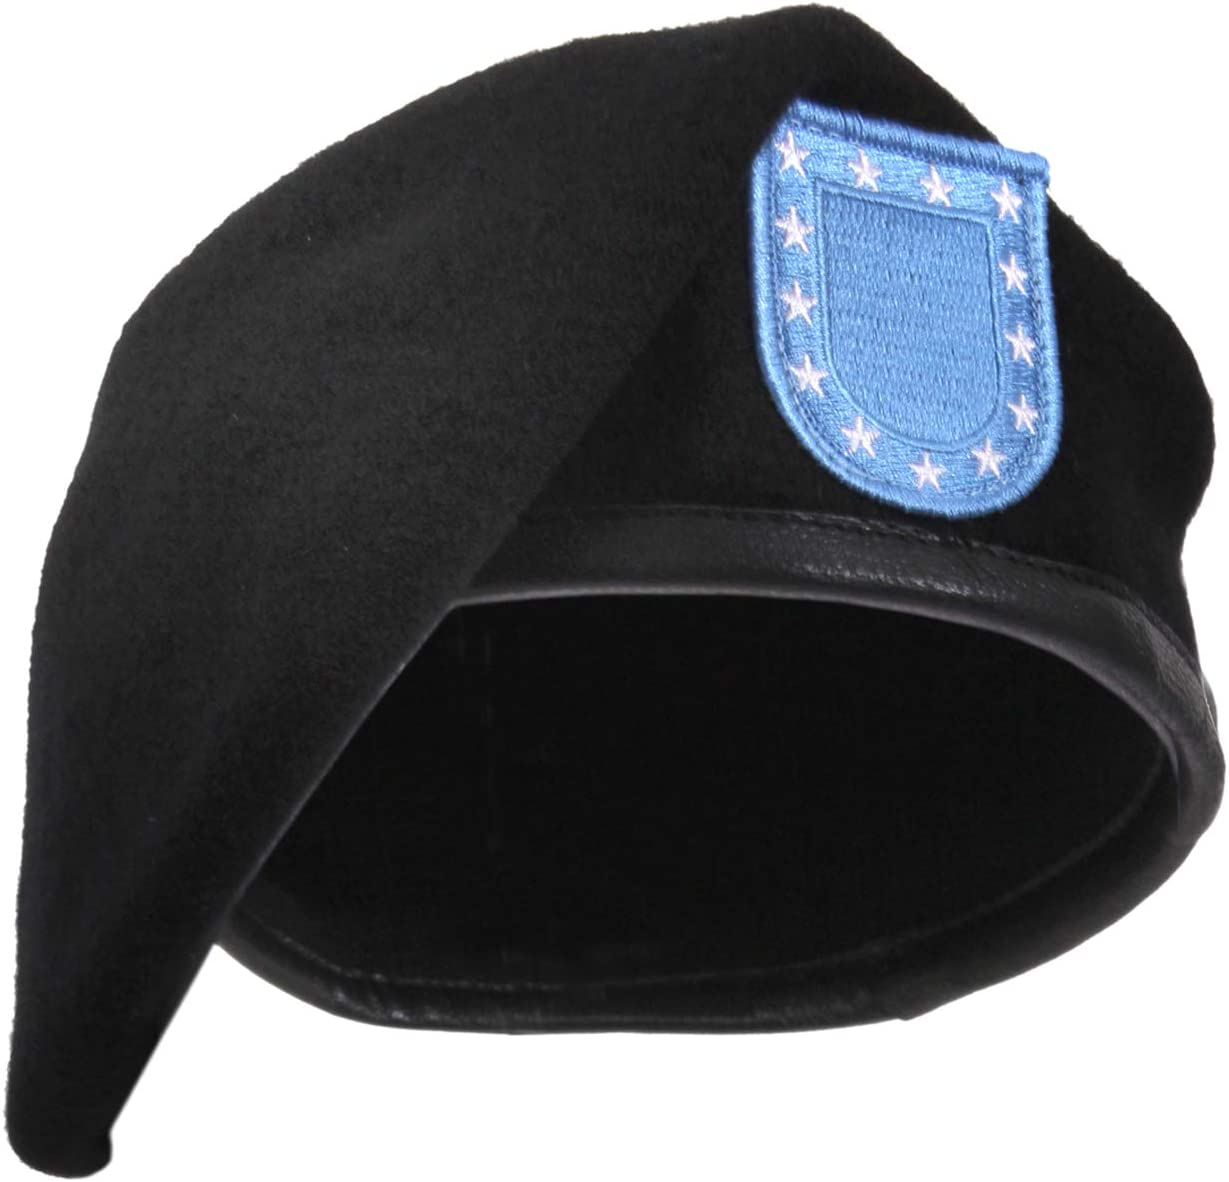 Inspection Ready Wool BLACK BERET WITHOUT FLASH Military French Cap Beanie